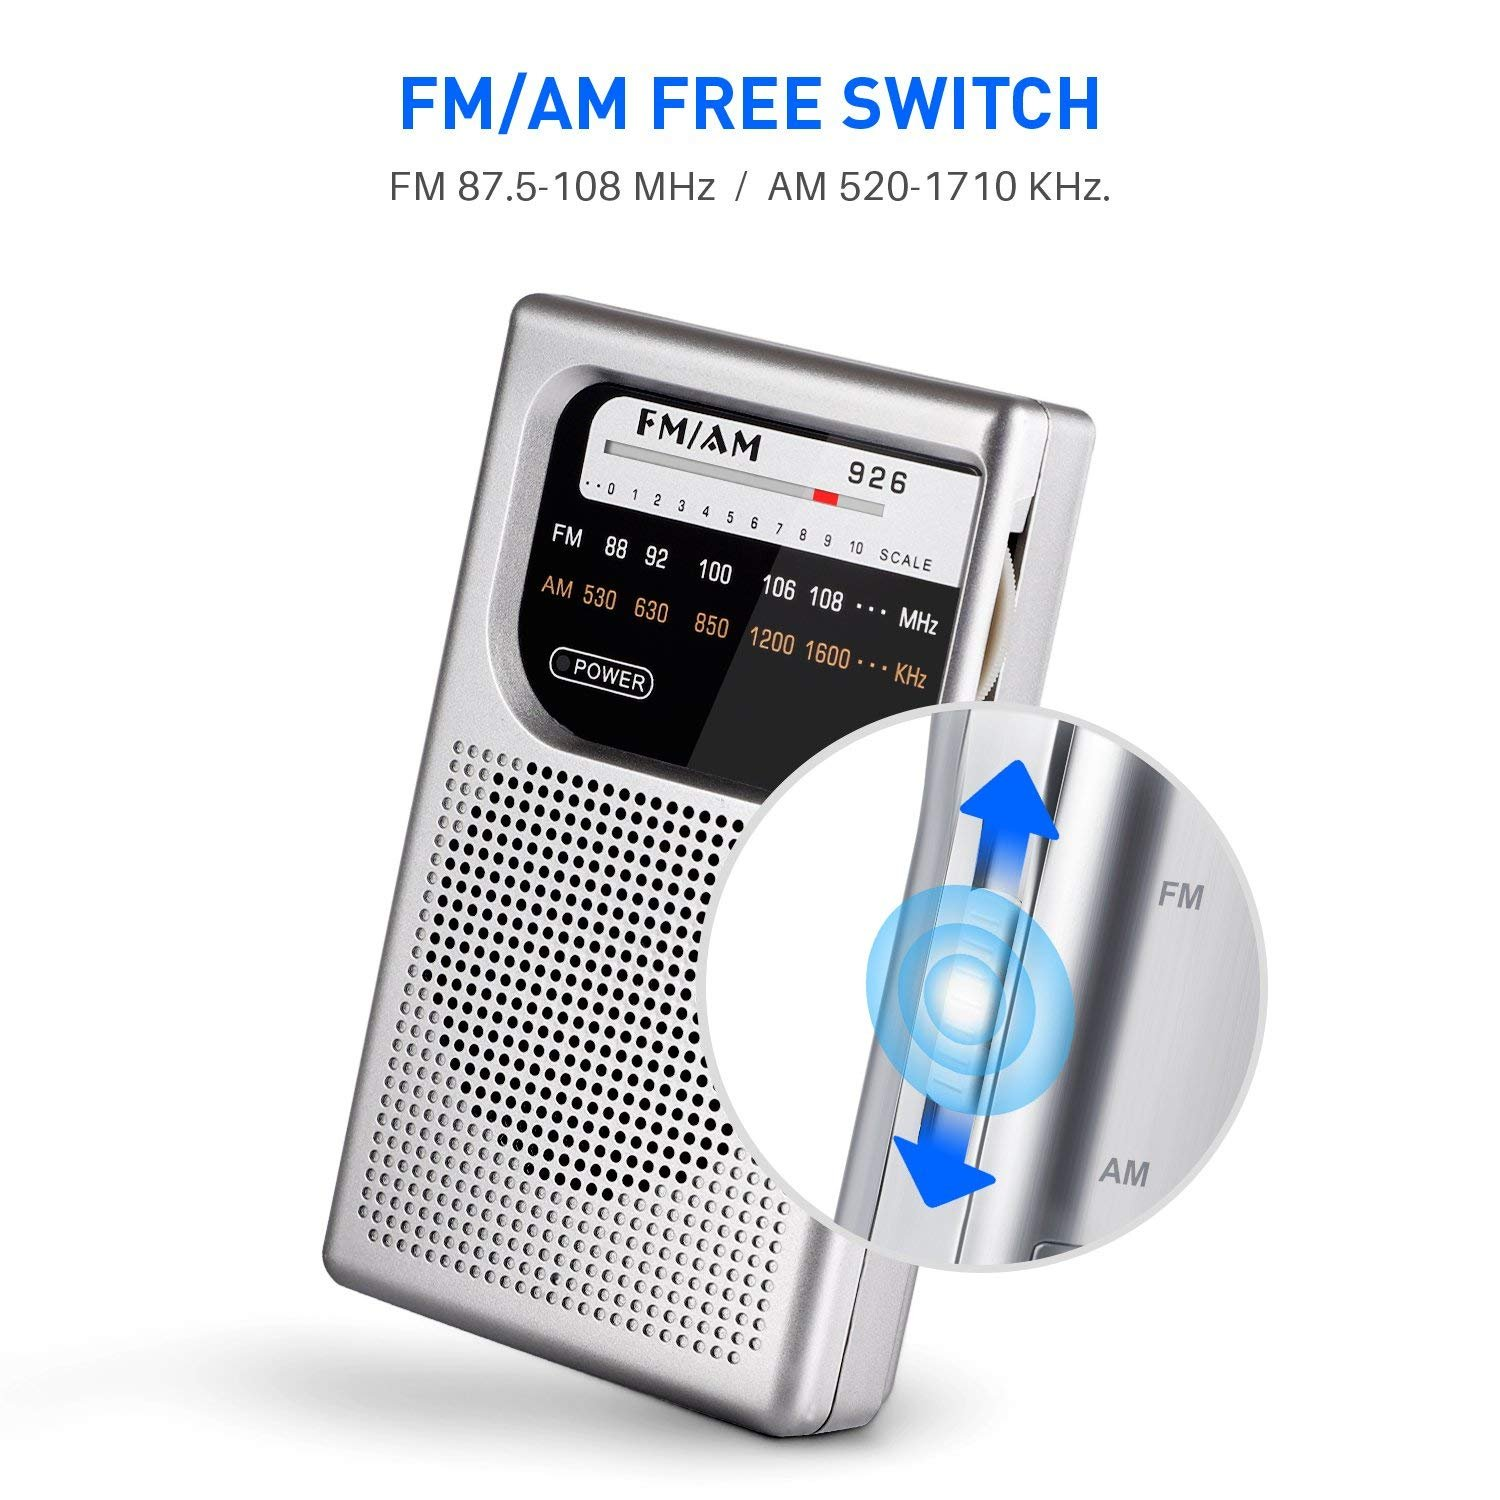 Am Fm Pocket Radio Mini Portable With An External Amplifier You Need To Supply A Speakers Sp2003 Superior Reception And Clear Sound Battery Operated 35mm Headphone Jack